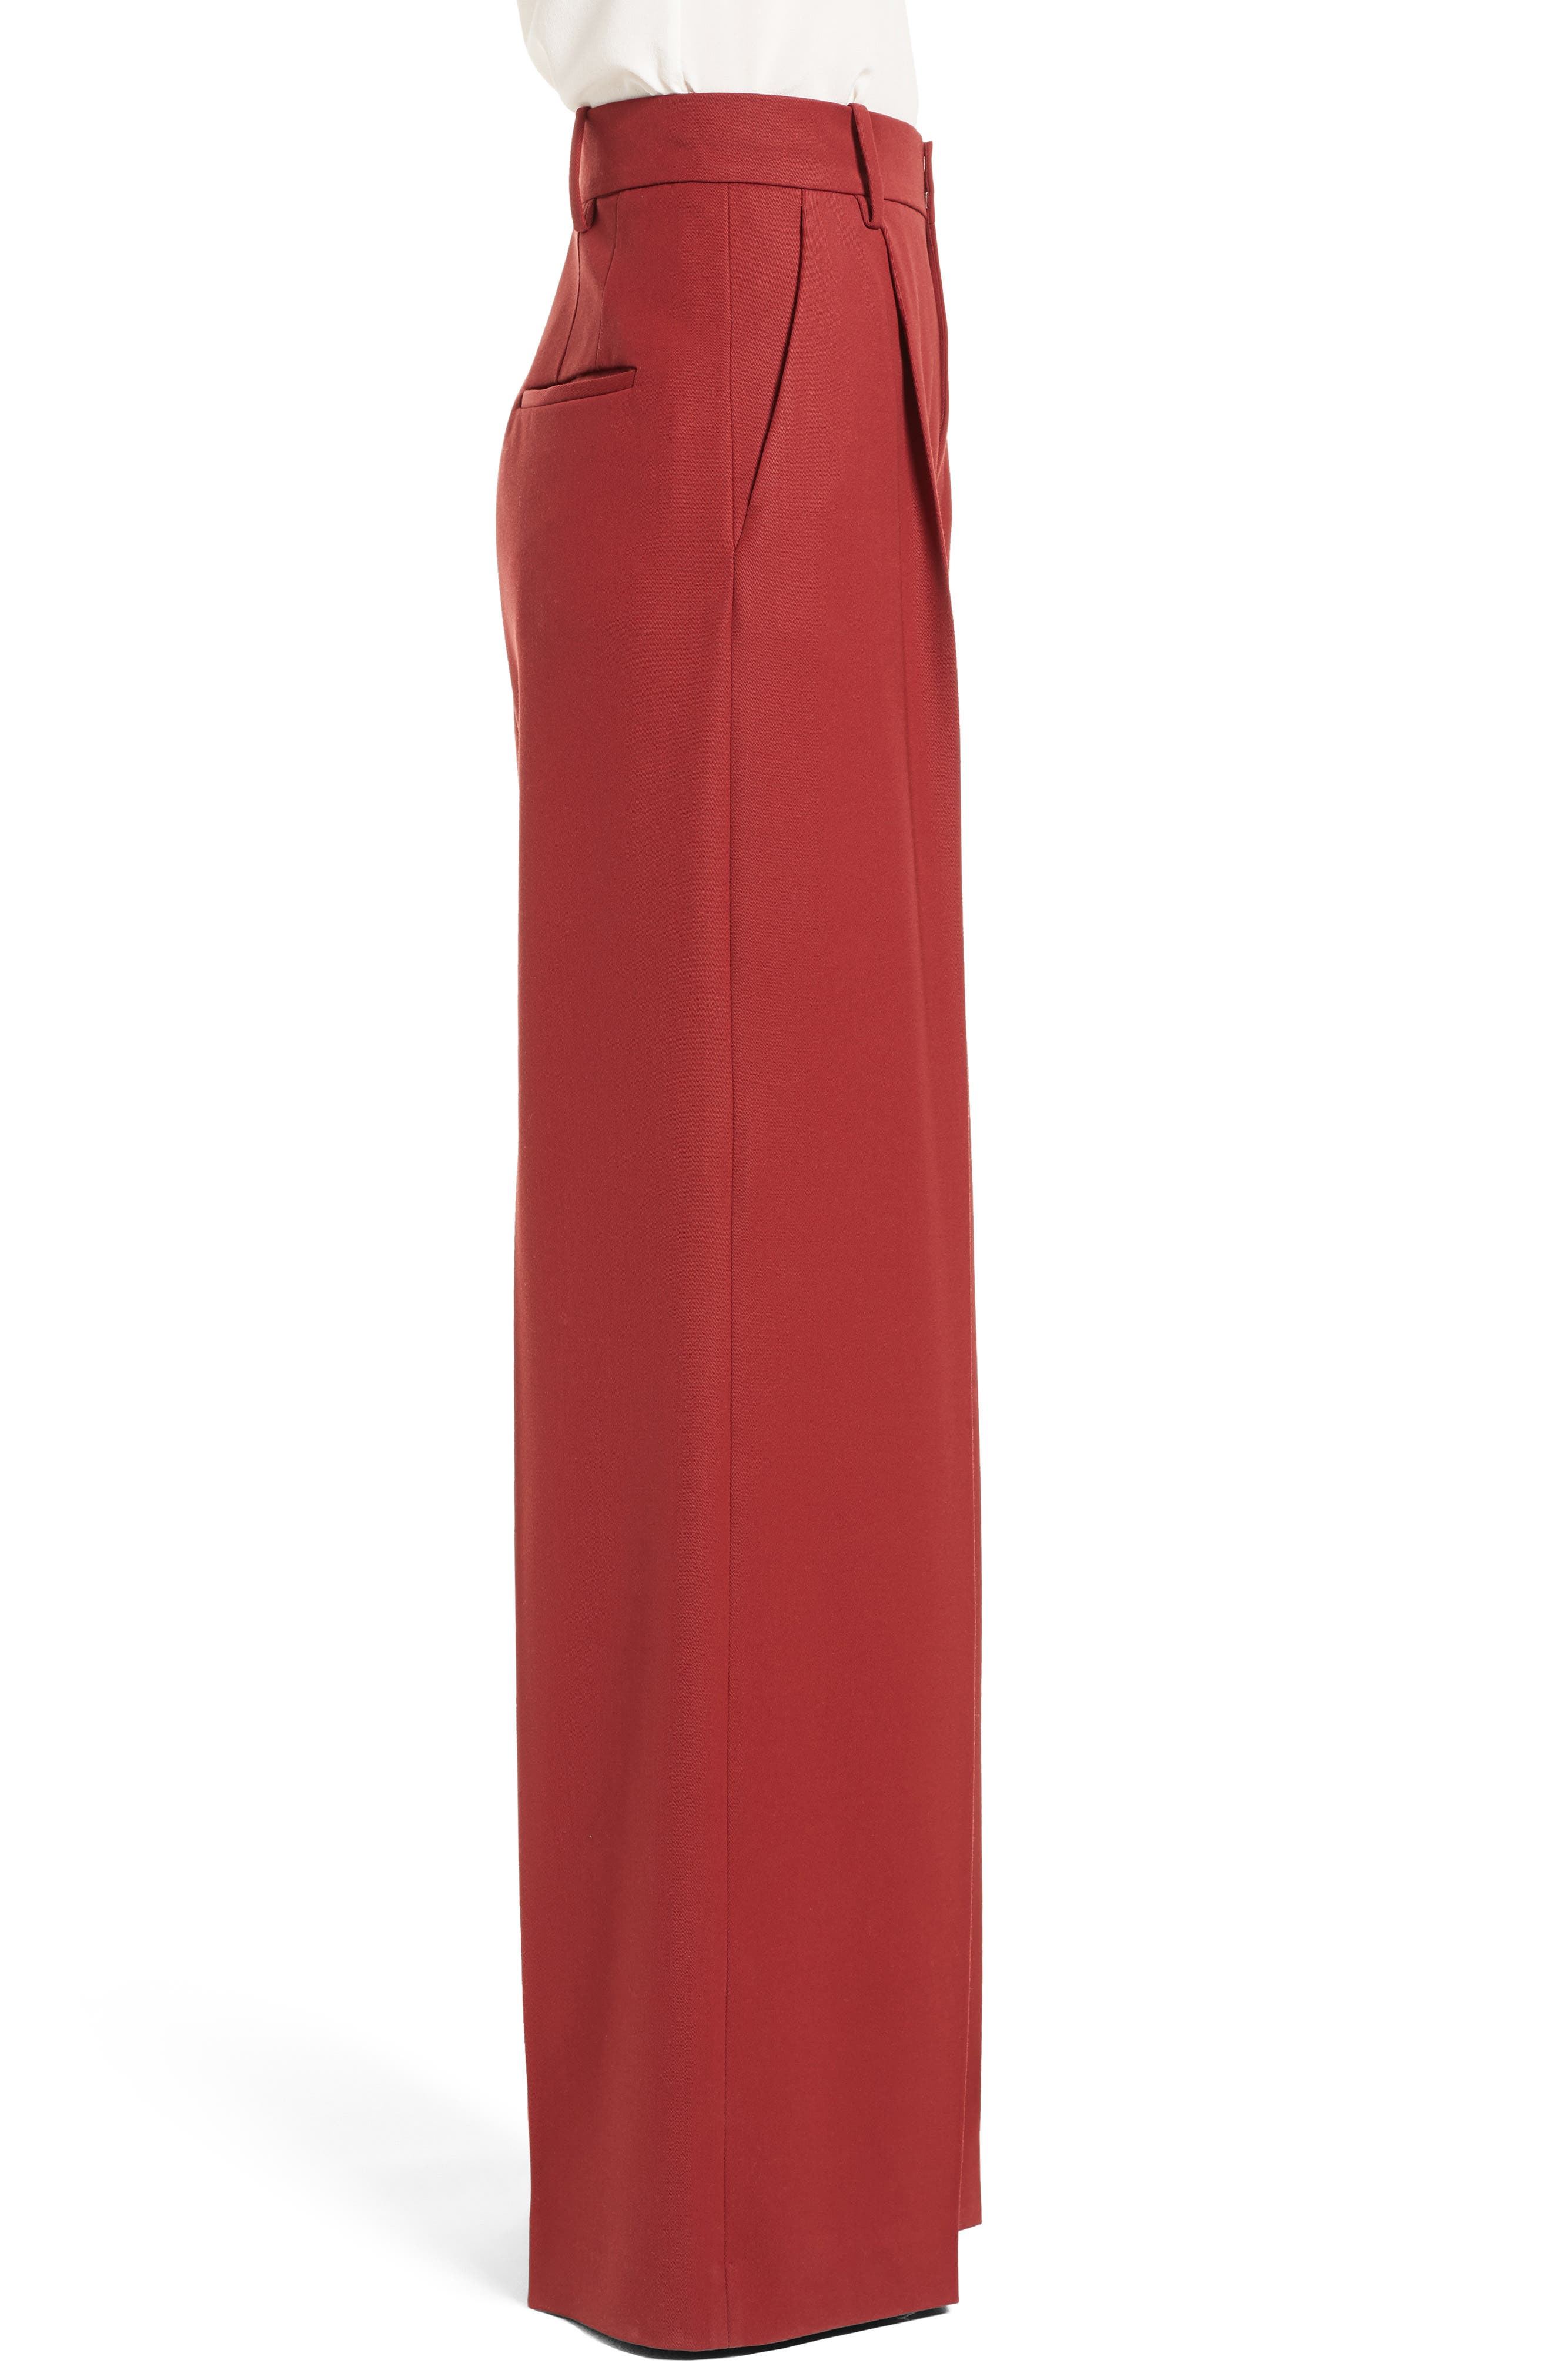 Stretch Wool Wide Leg Pants,                             Alternate thumbnail 3, color,                             930